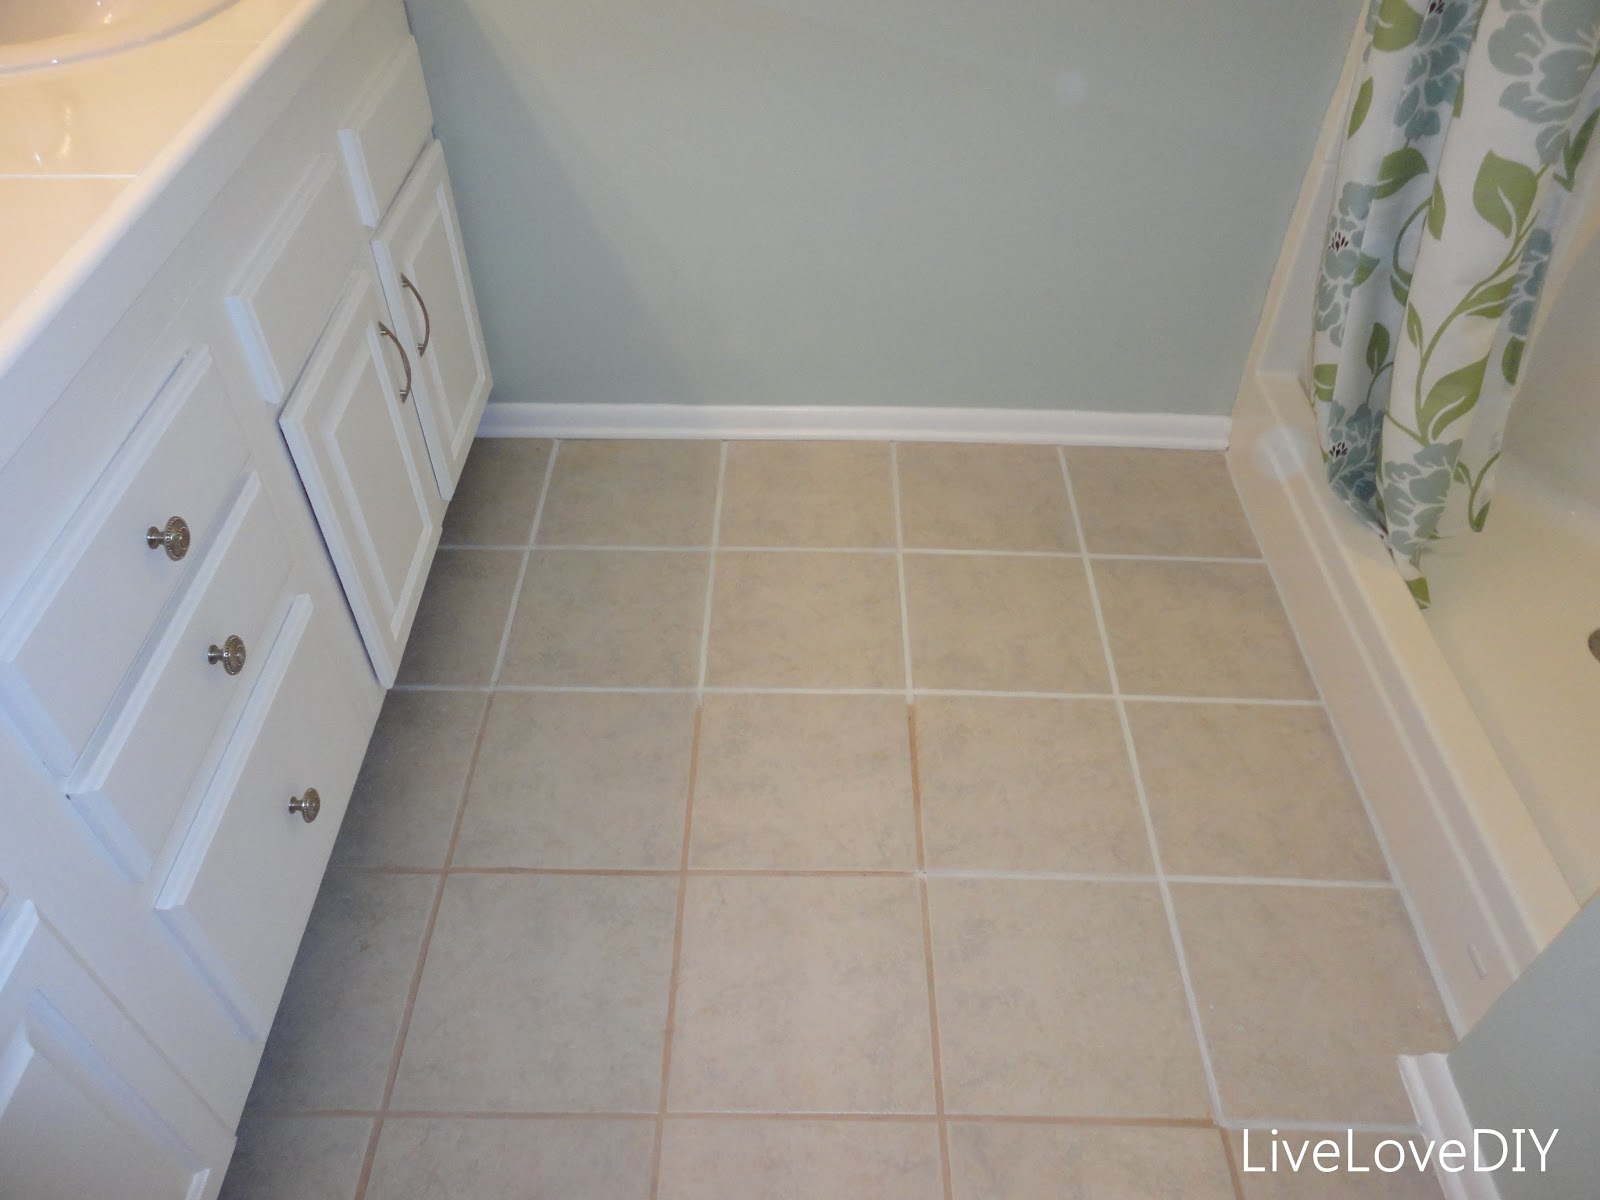 Livelovediy how to restore dirty tile grout to dailygadgetfo Gallery